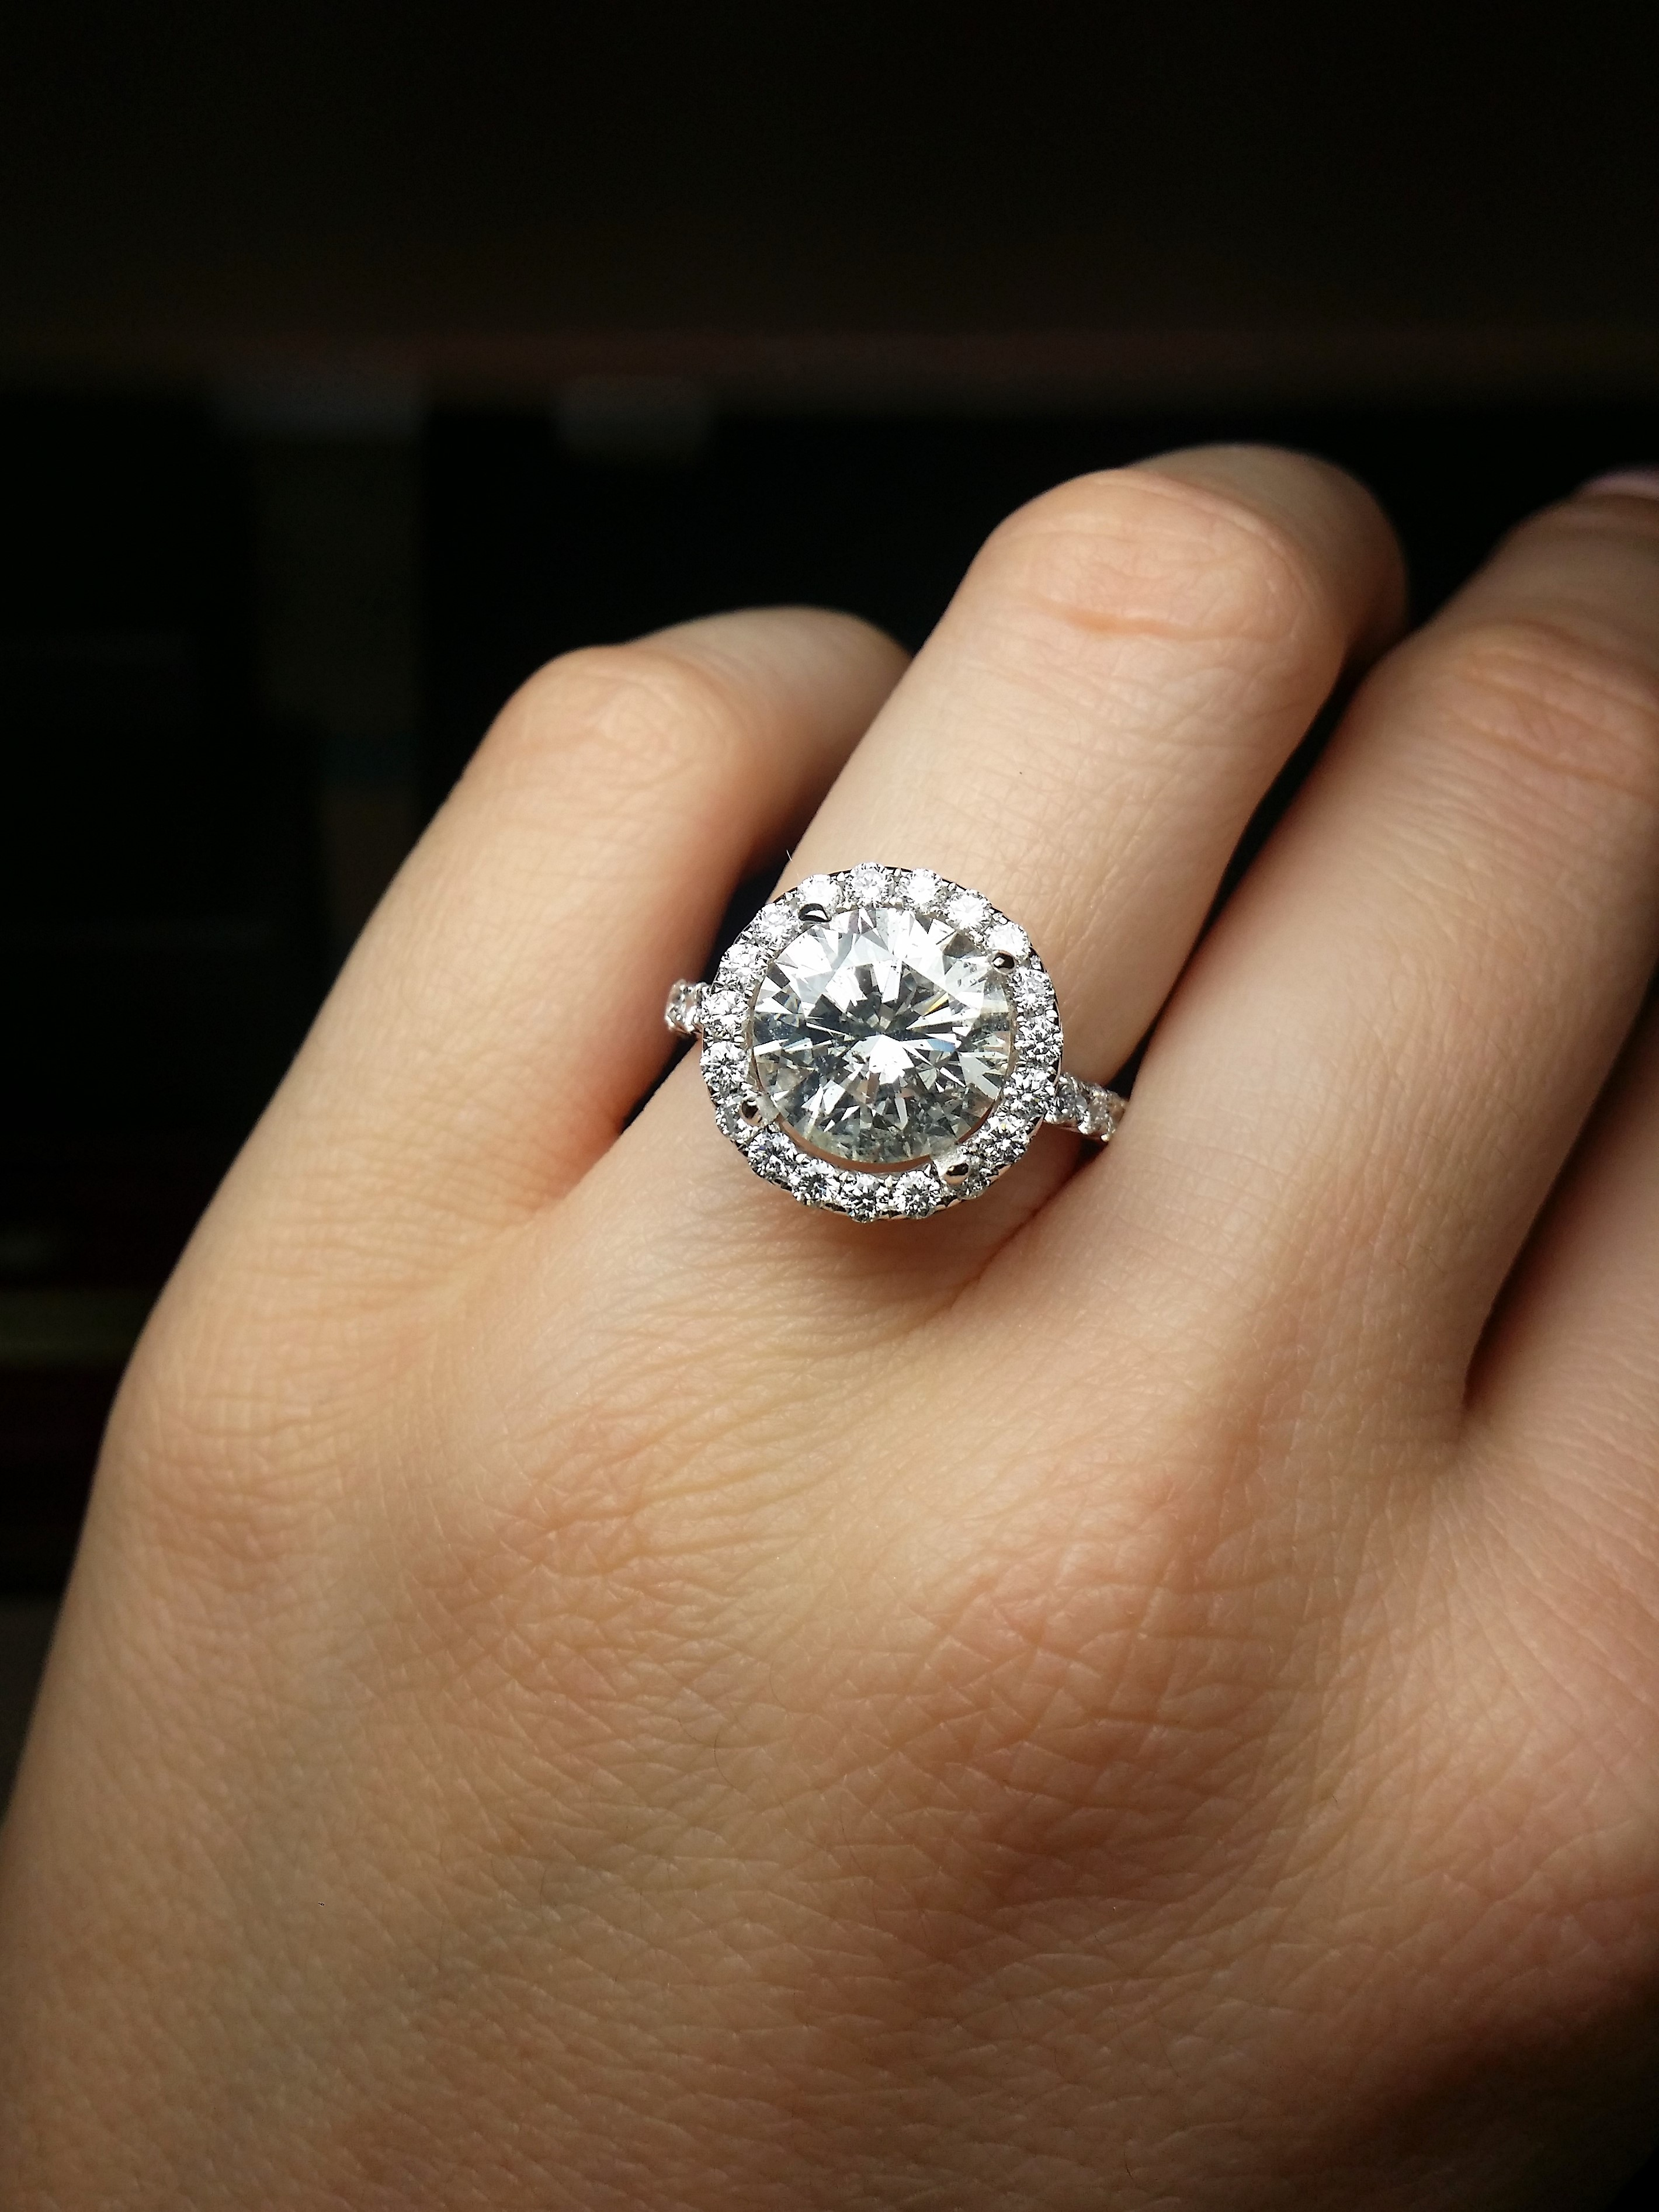 Dream engagement ring with 3.70cts round diamond